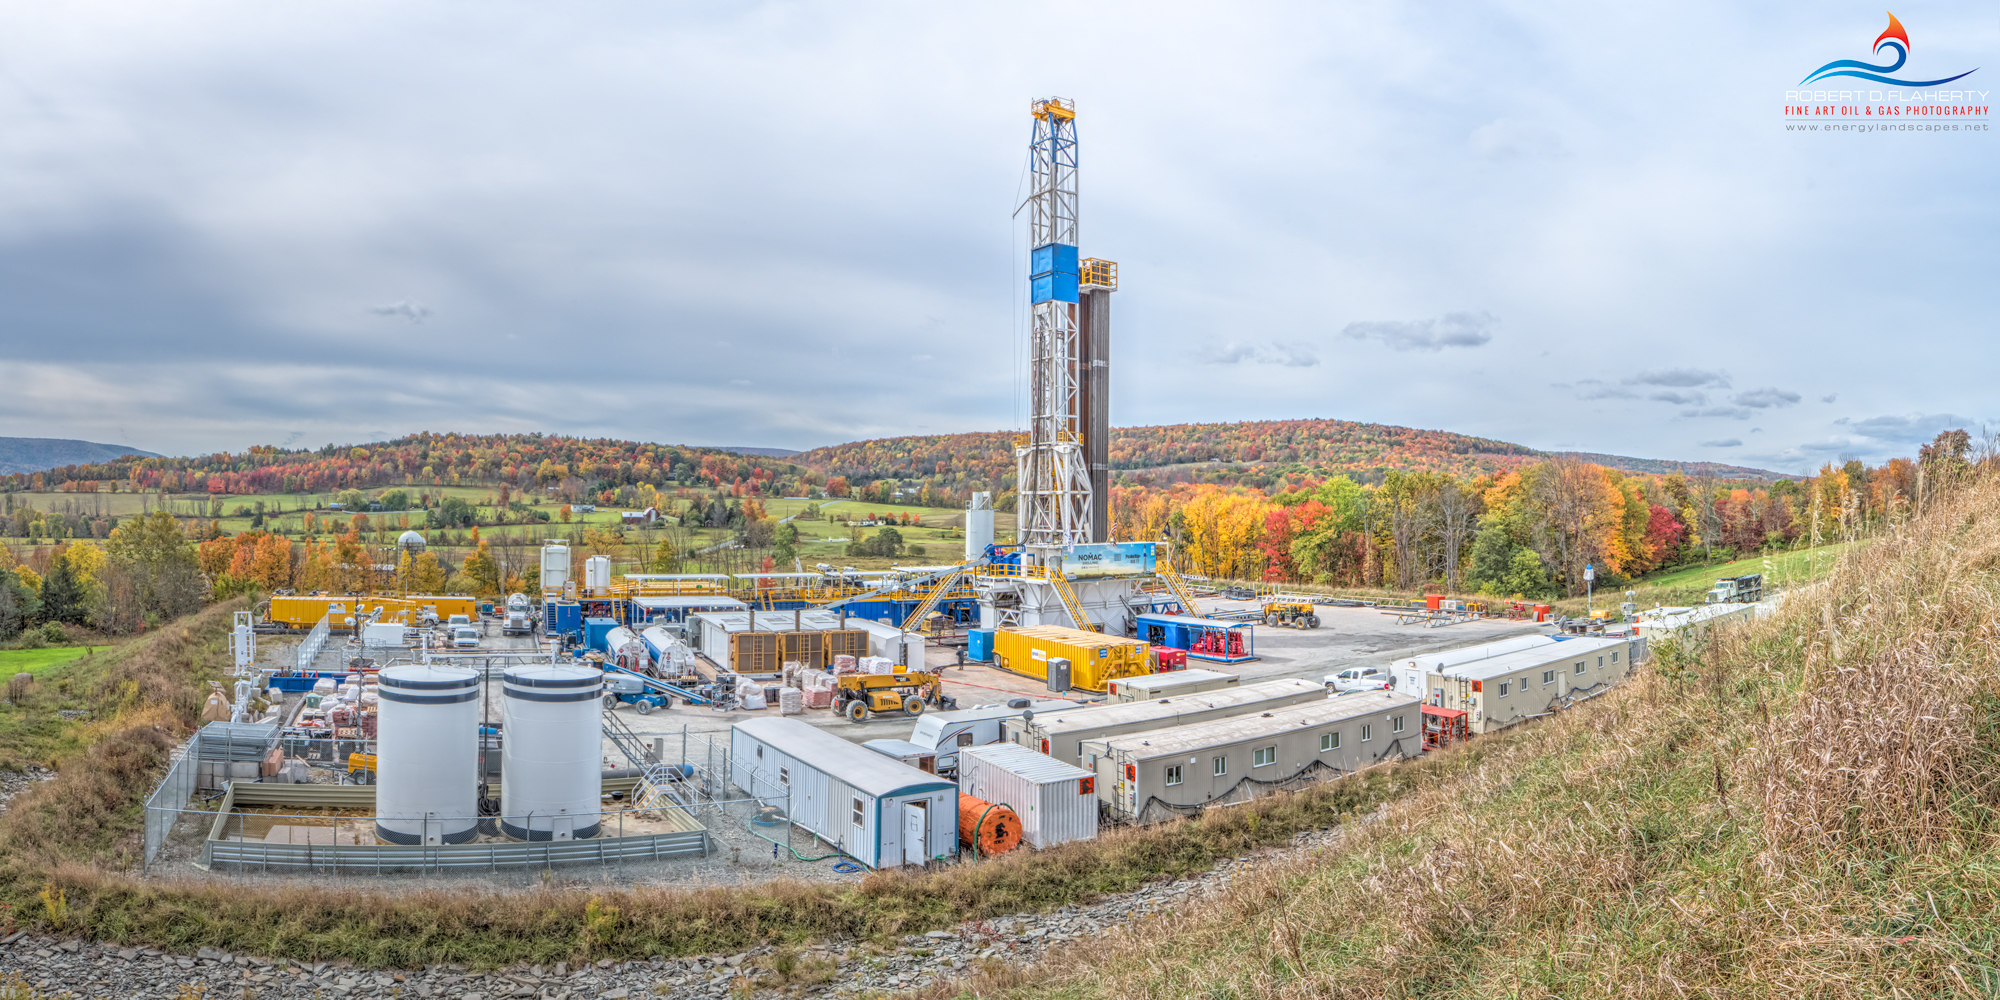 Autumn, Susquehanna County, Pennsylvania, drilling rig, Marcellus Shale, gas well, natural gas, lateral well, fall, Nomac, Nomac Drilling, mural, October, panorama, photo